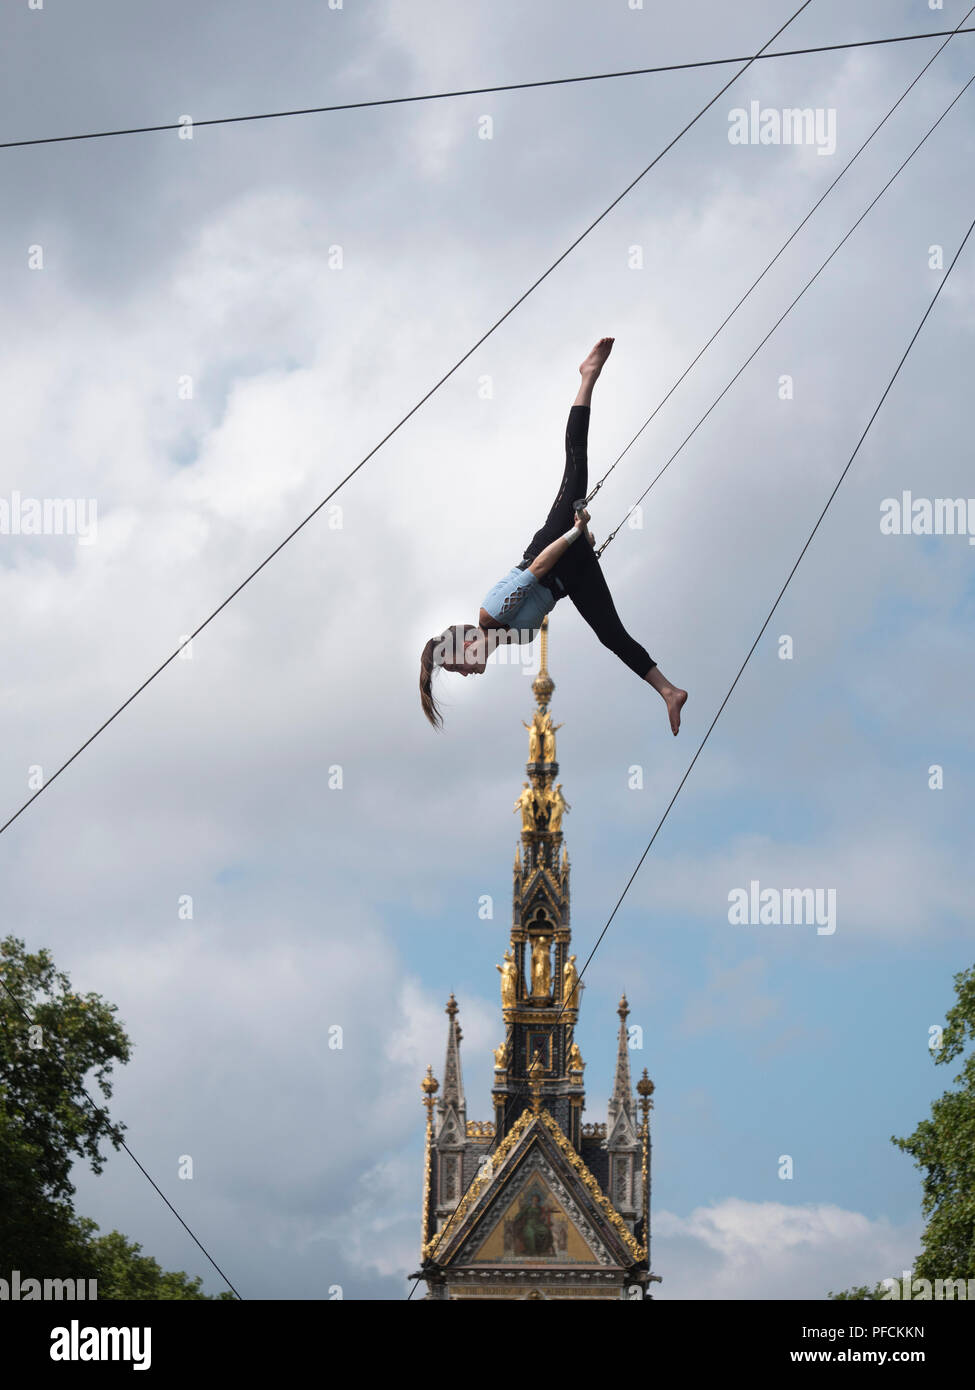 London, UK. 21st August, 2018. Young women keep cool in 27c heat by appearing to fly over the Albert Memorial in Kensington, London. They are they training with the Flying Trapeze School (www.gorillacircus.com) Credit: David Thorpe/Alamy Live News - Stock Image